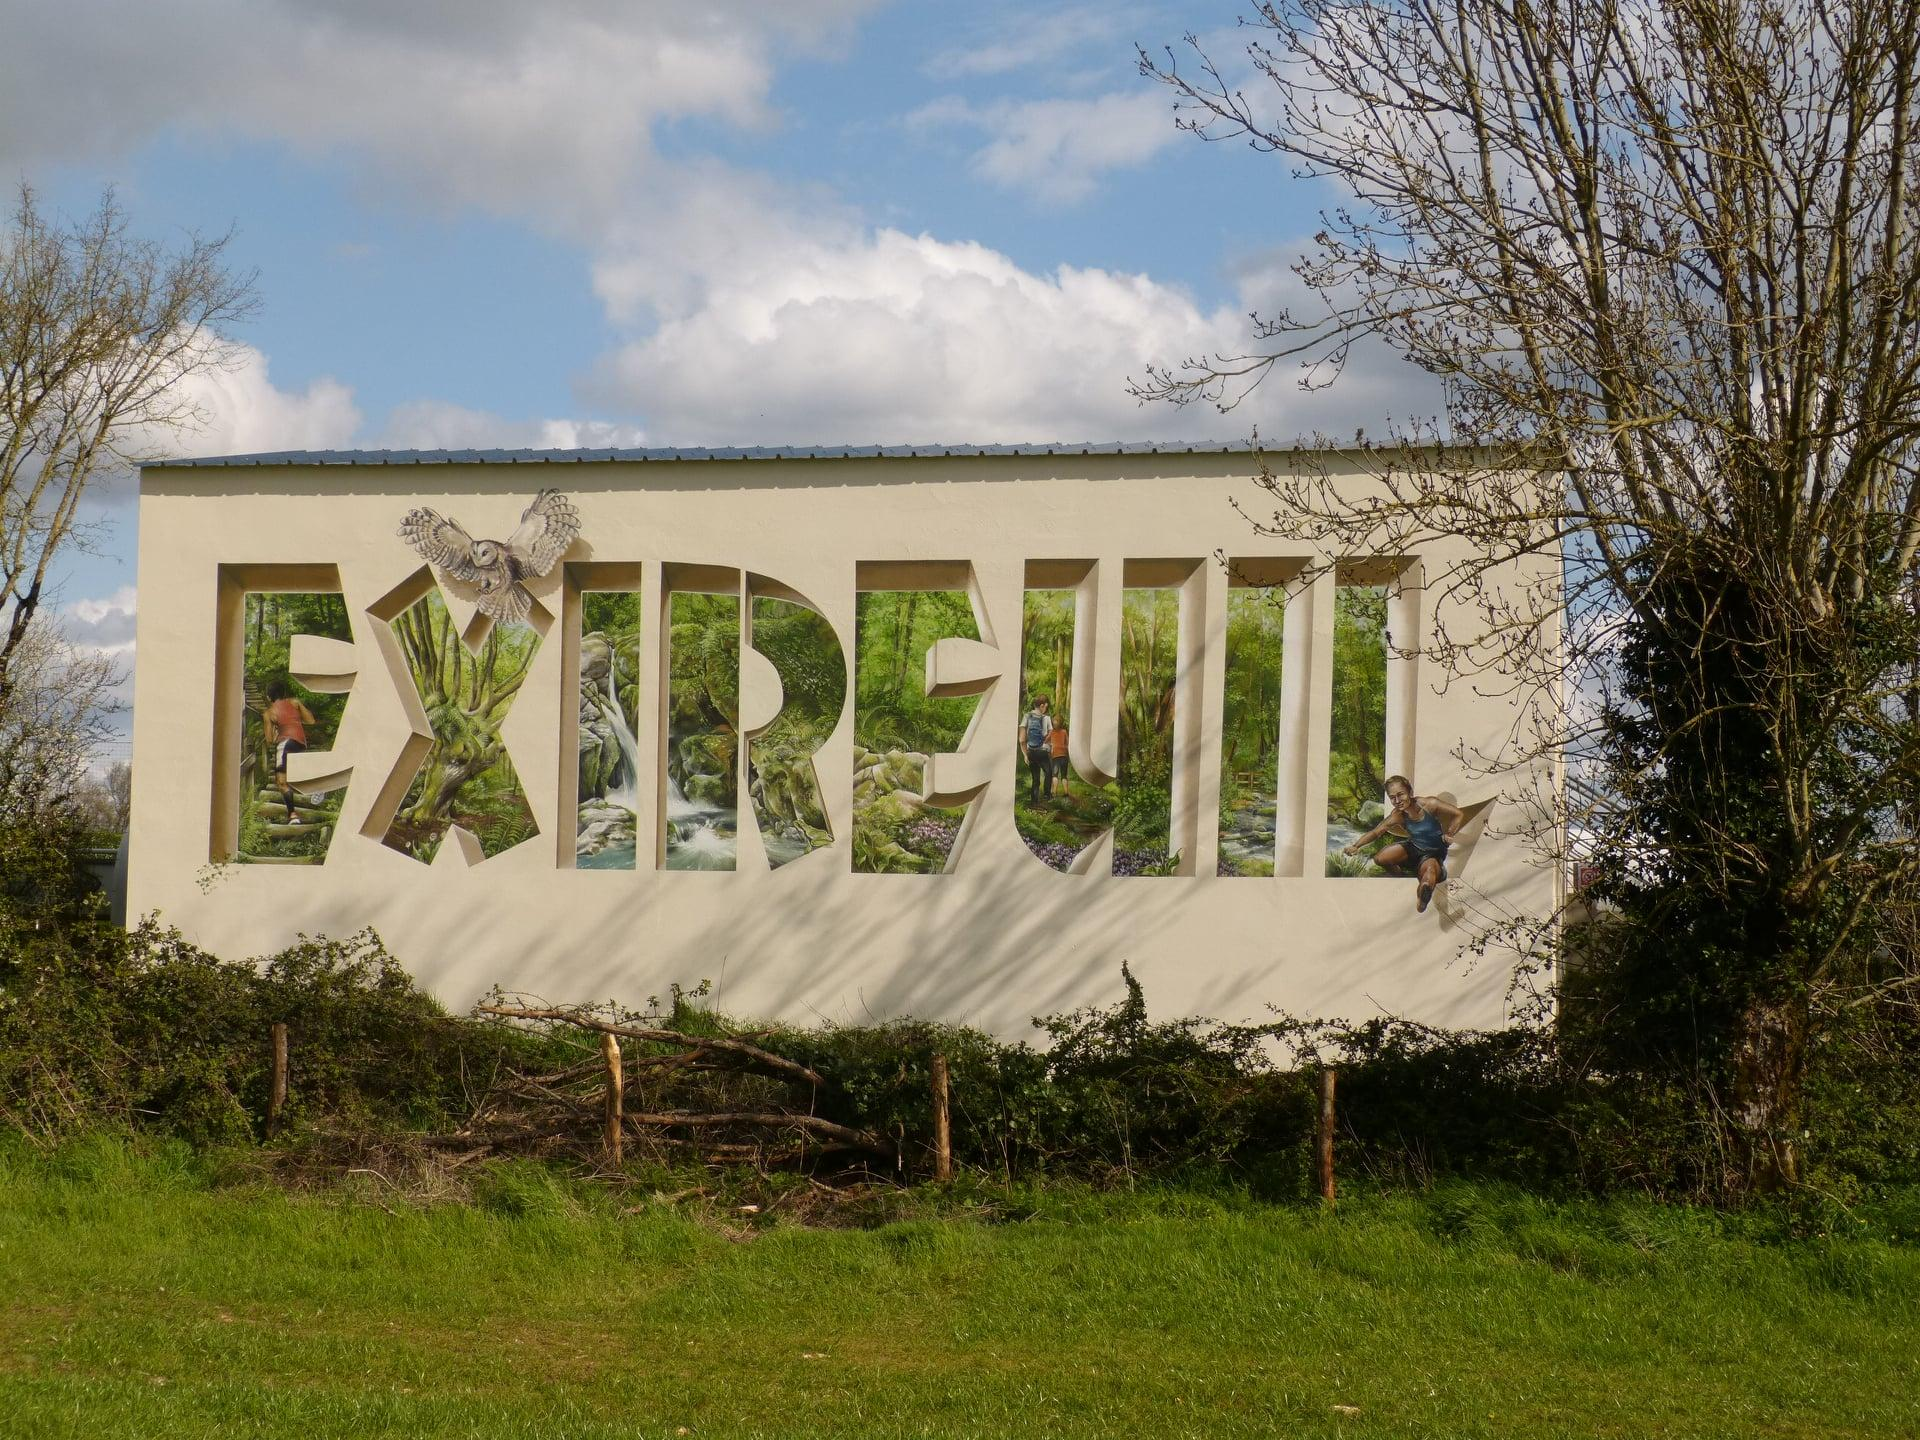 Exireuil 1